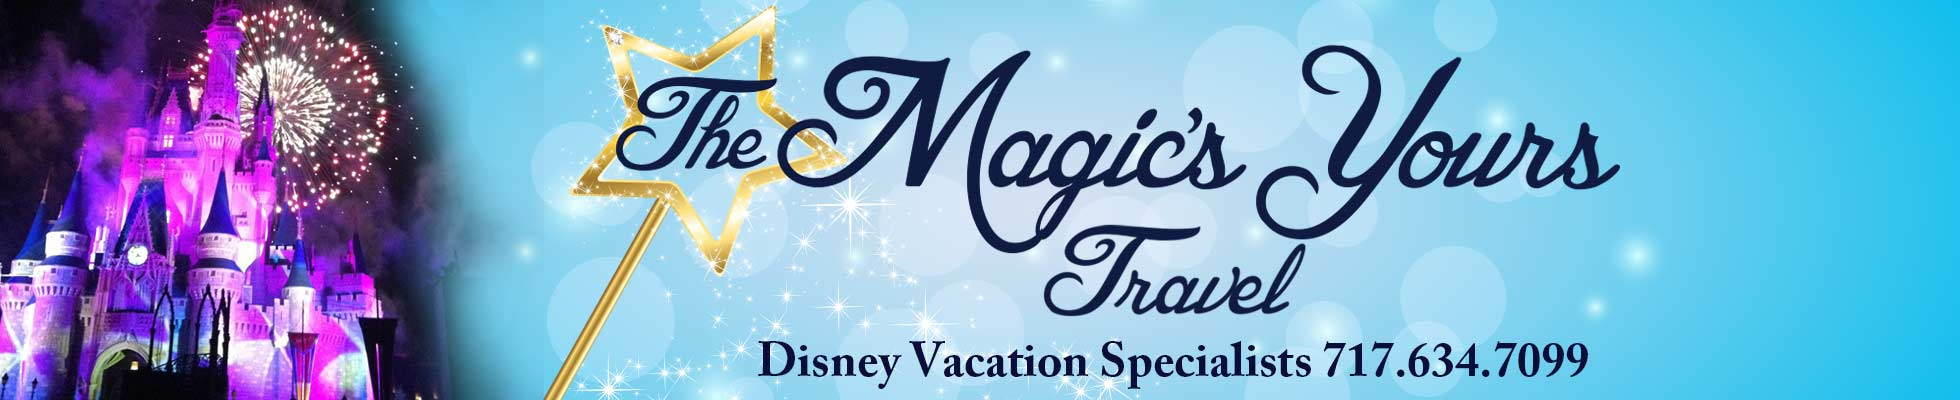 The Magics Yours Travel Agency, Hanover PA